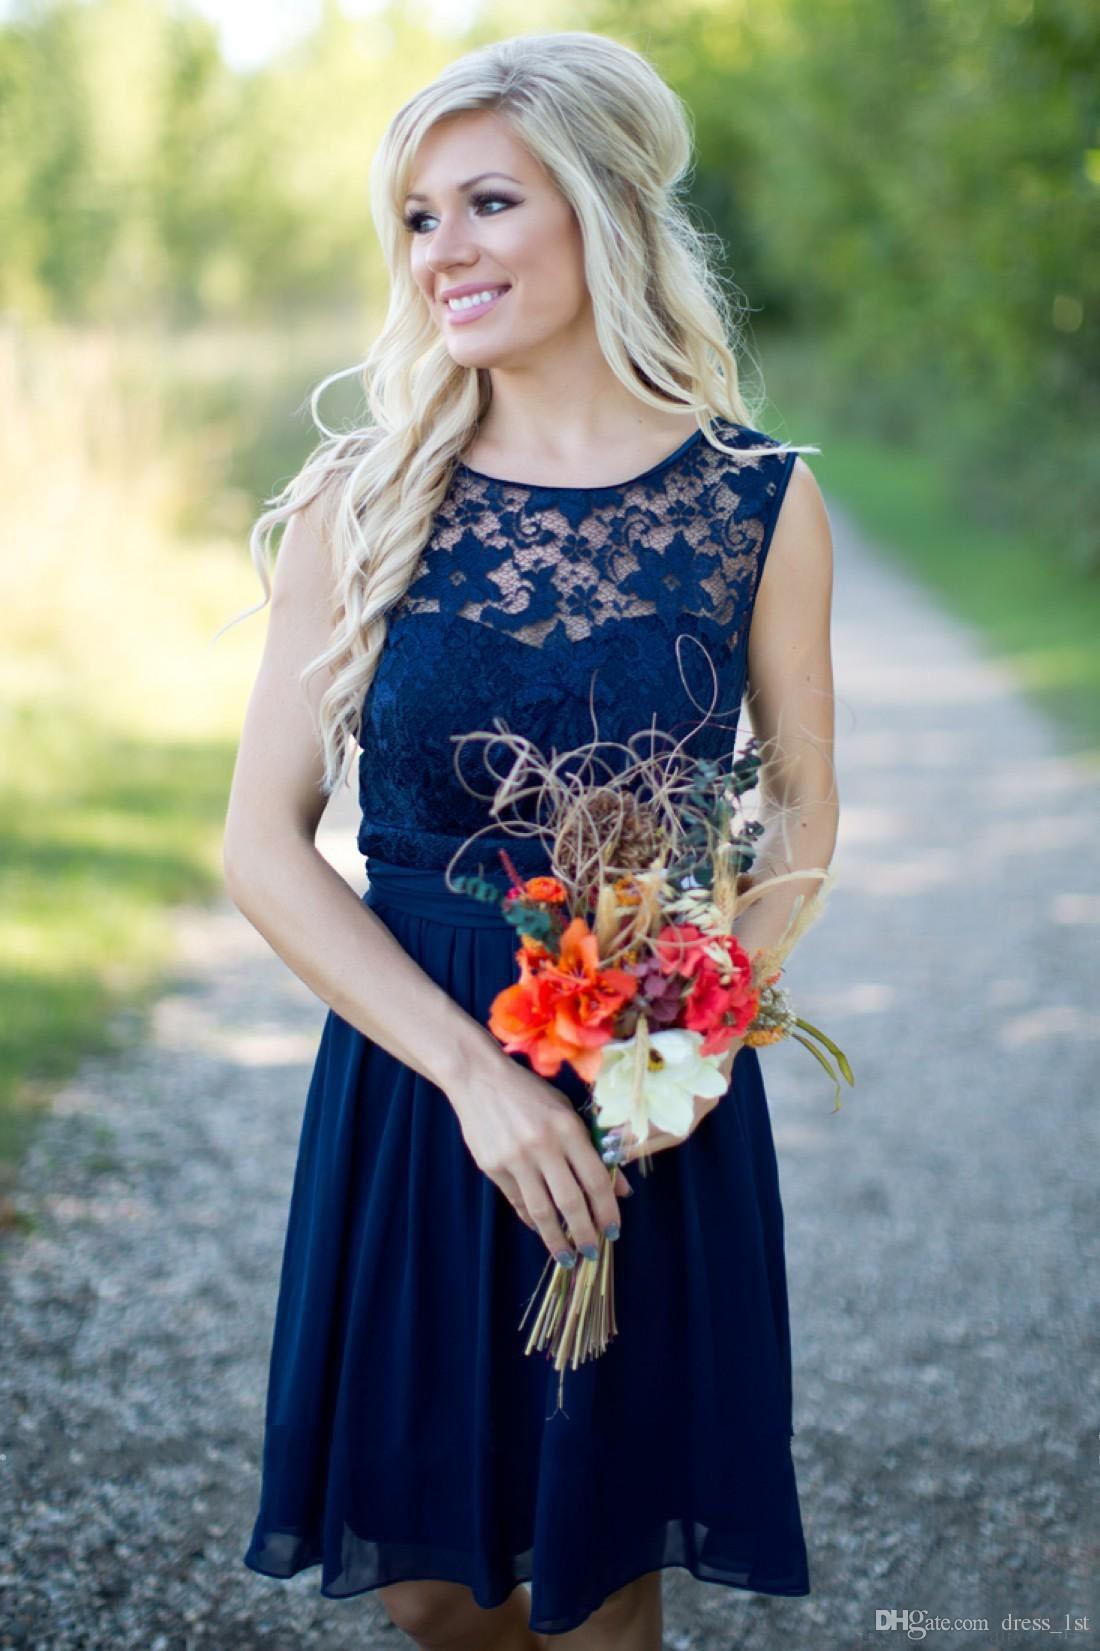 Western Country 2019 Short Bridesmaid Dresses Cheap Royal Blue Lace and Chiffon A Line Knee Length Beach Wedding Guest Dresses